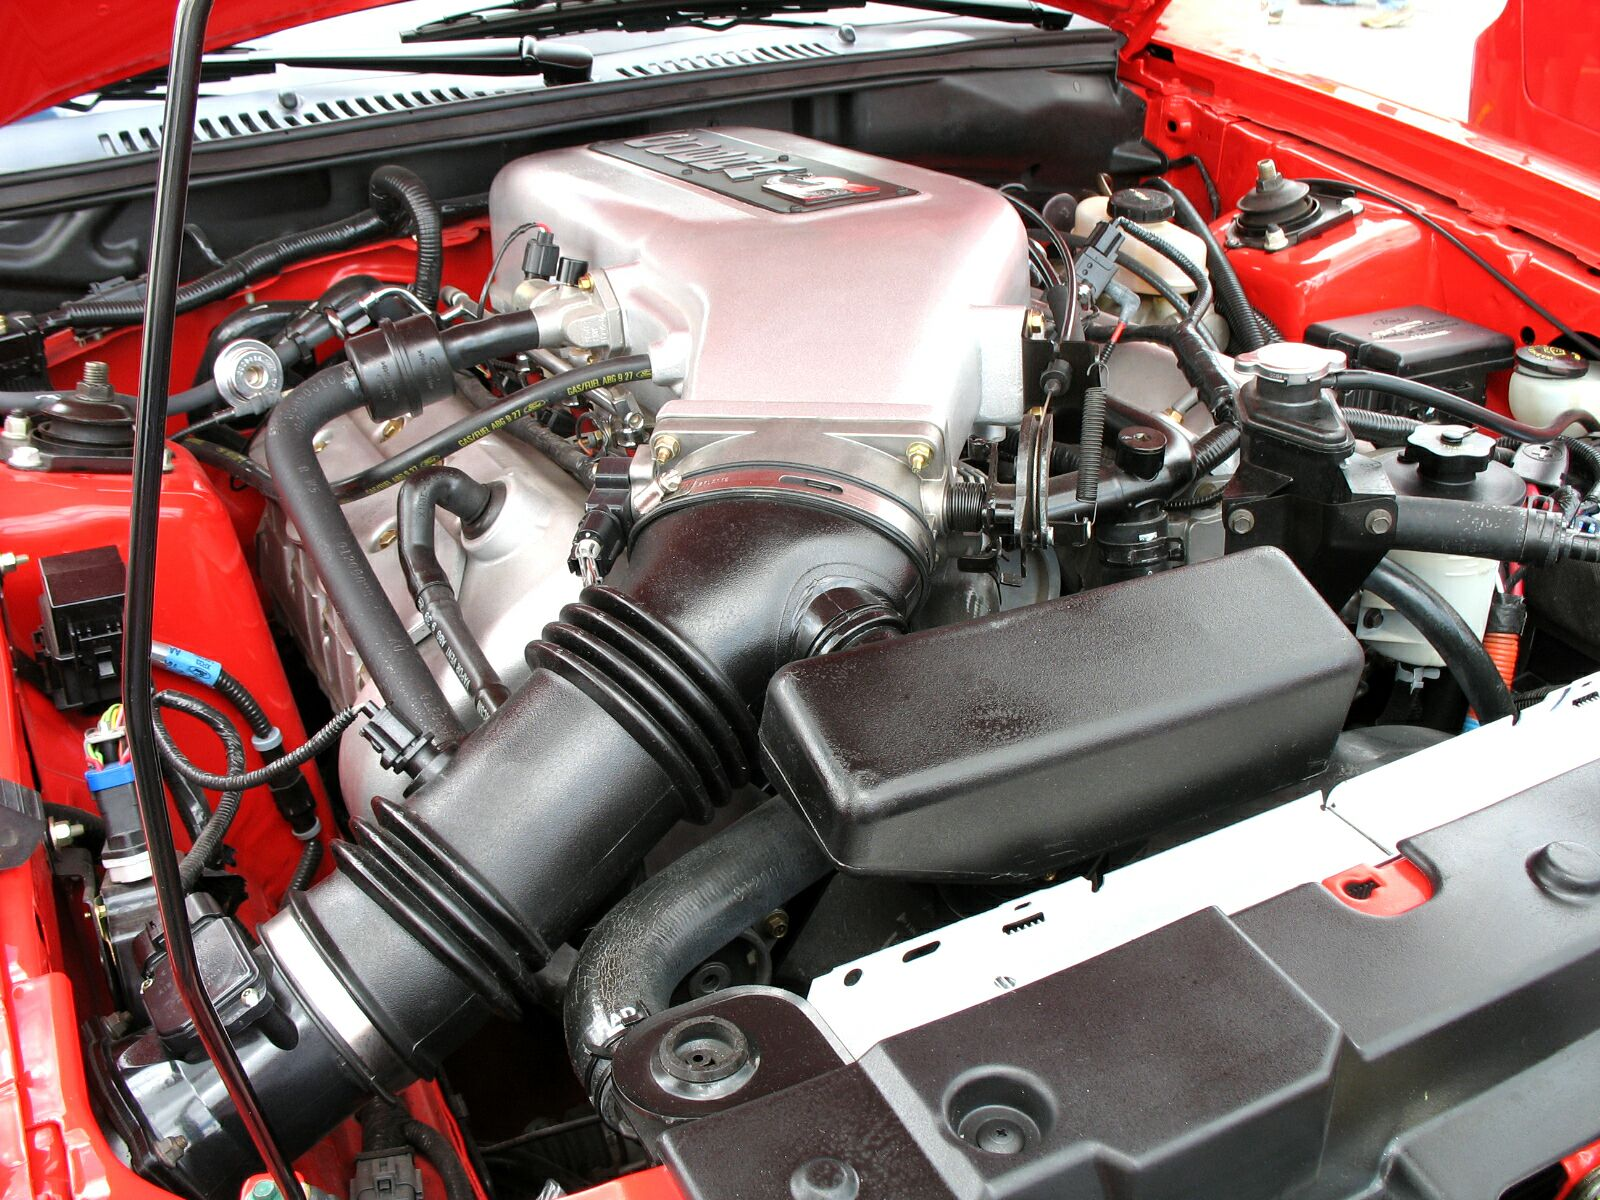 ford modular engine essay Specializing in modular ford engine builds with experience in 46, 50, and 54 2v, 3v, and 4v engines modular performance solutions is a motor sports shop for high performance enthusiast.